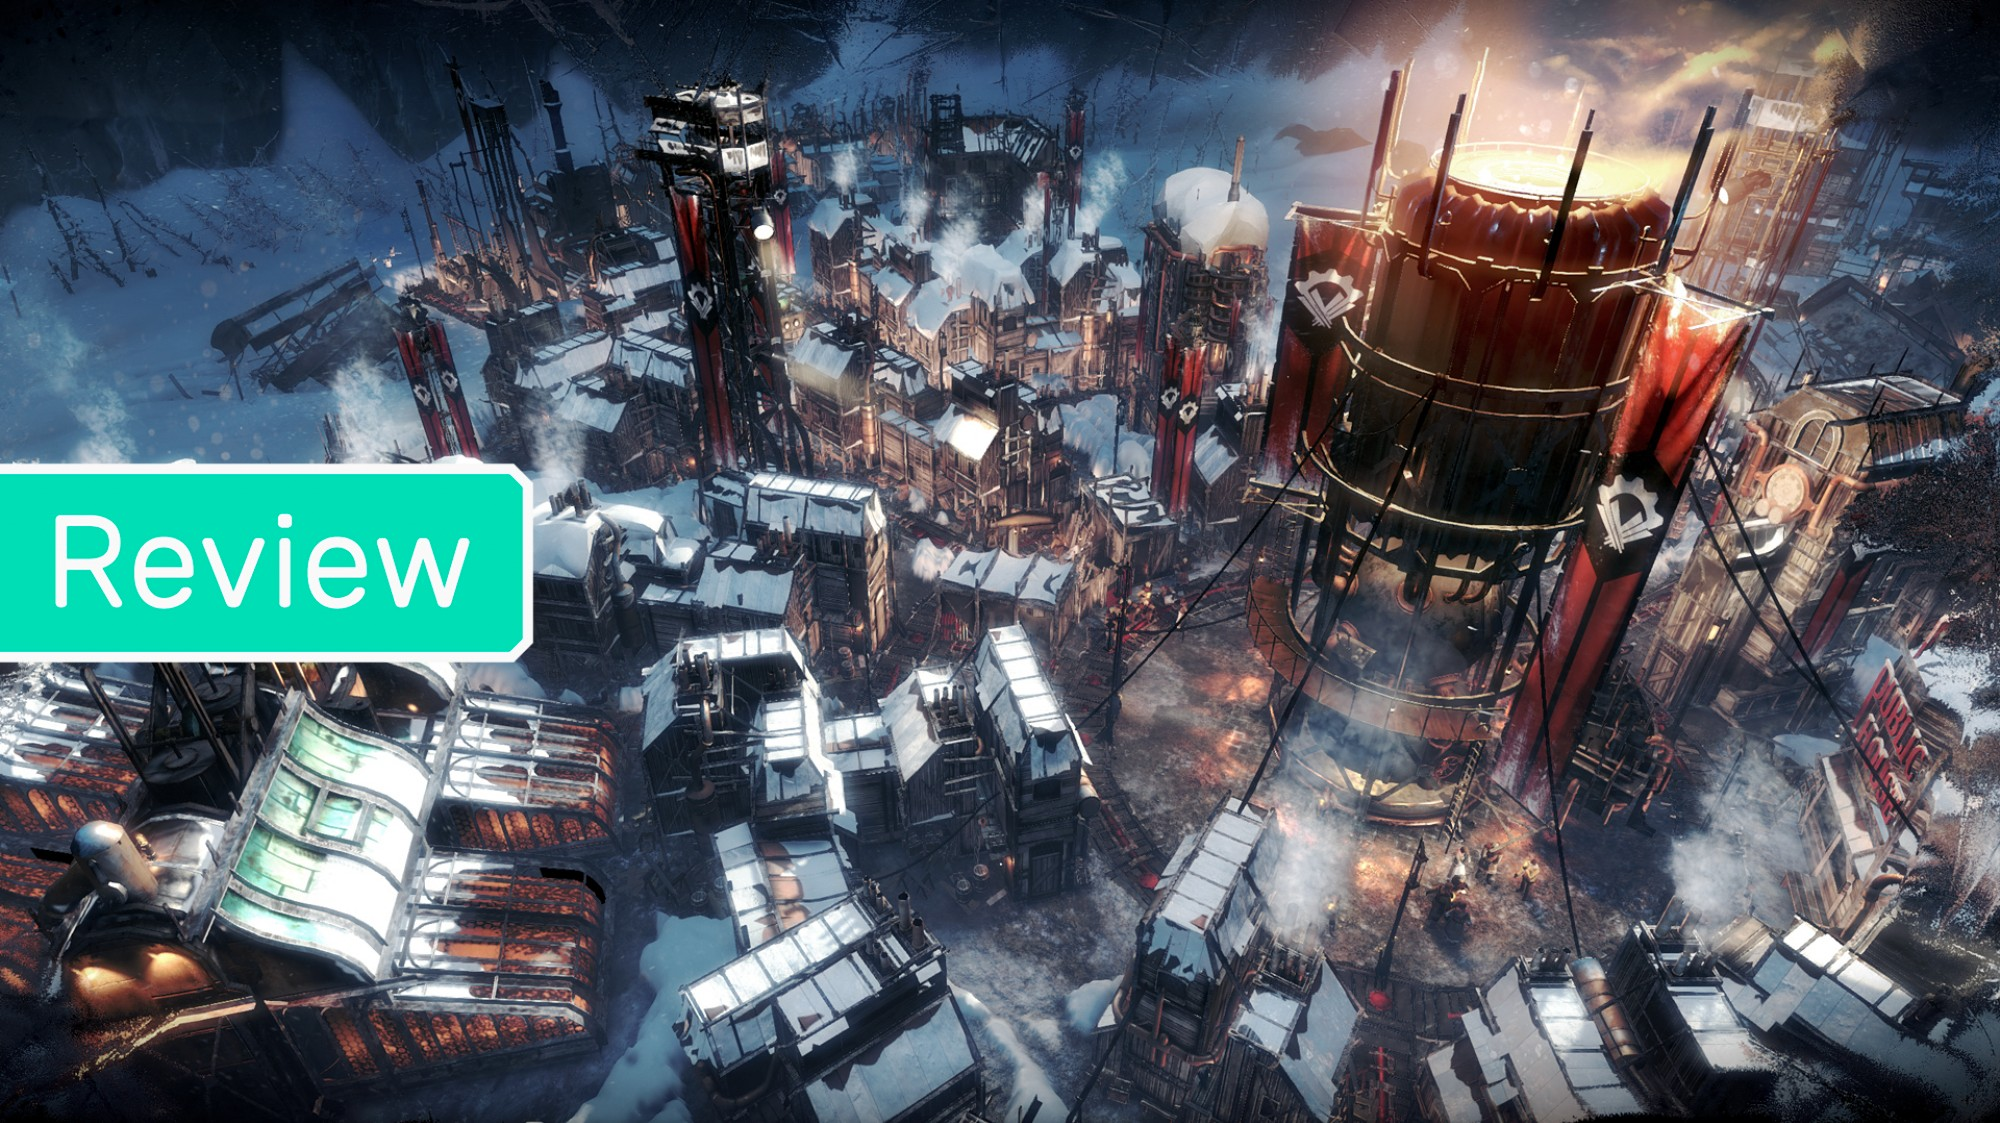 The Industrial Apocalypse of 'Frostpunk' Is More Truth Than